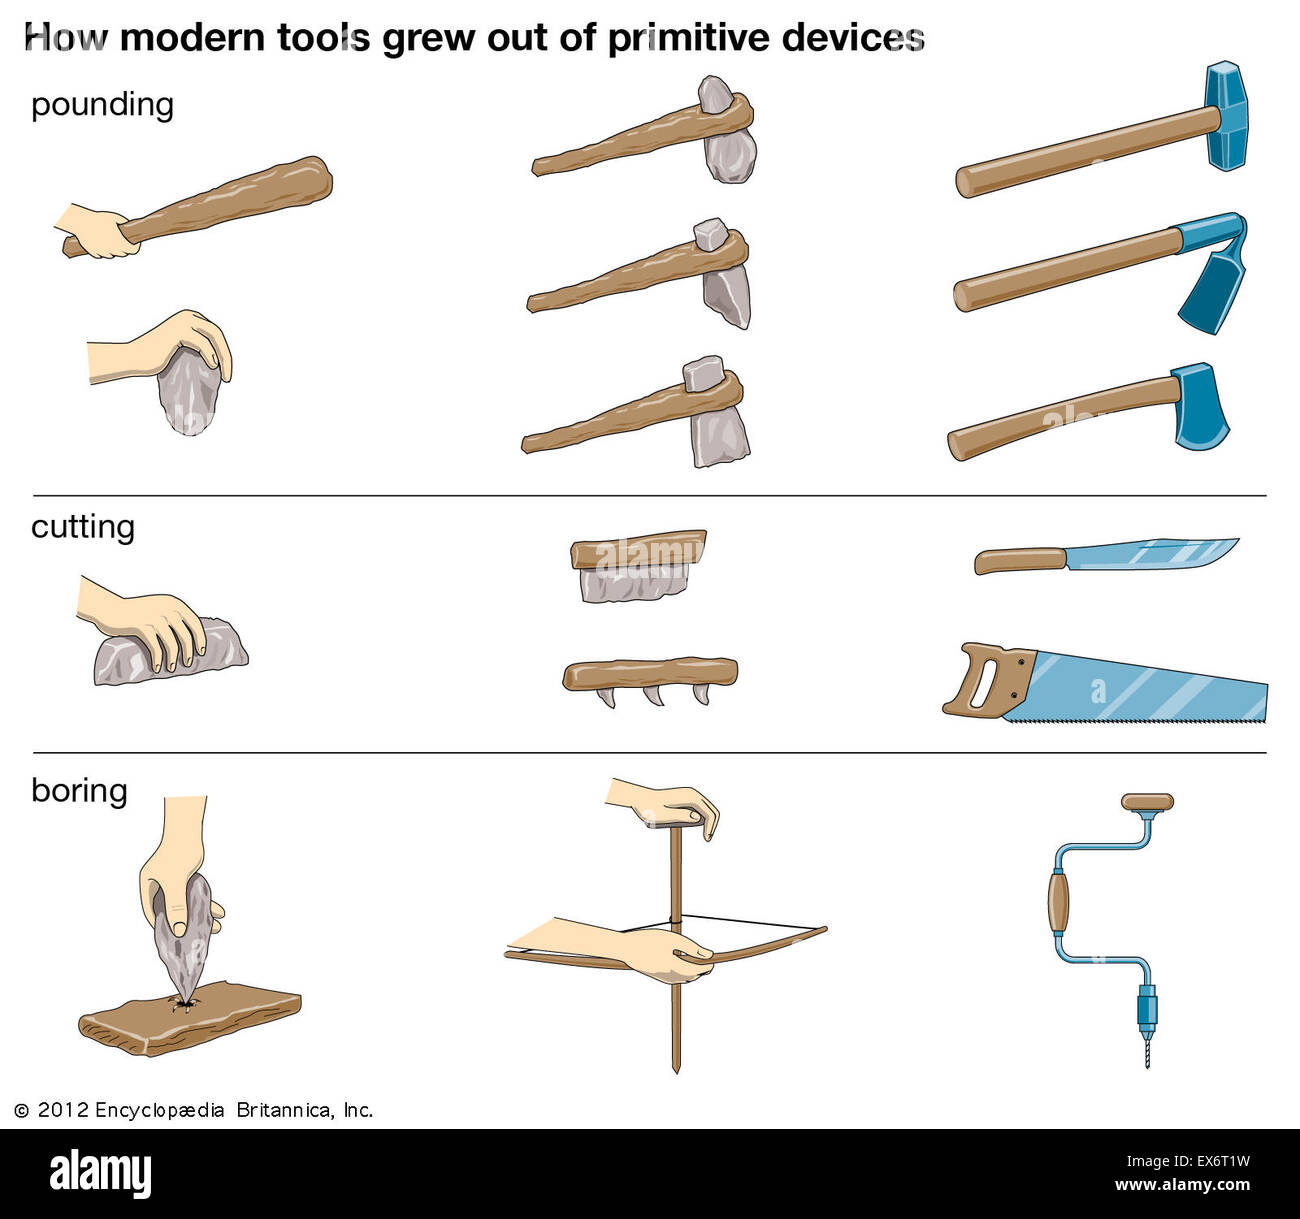 How modern tools grew out of primitive devices - Stock Image